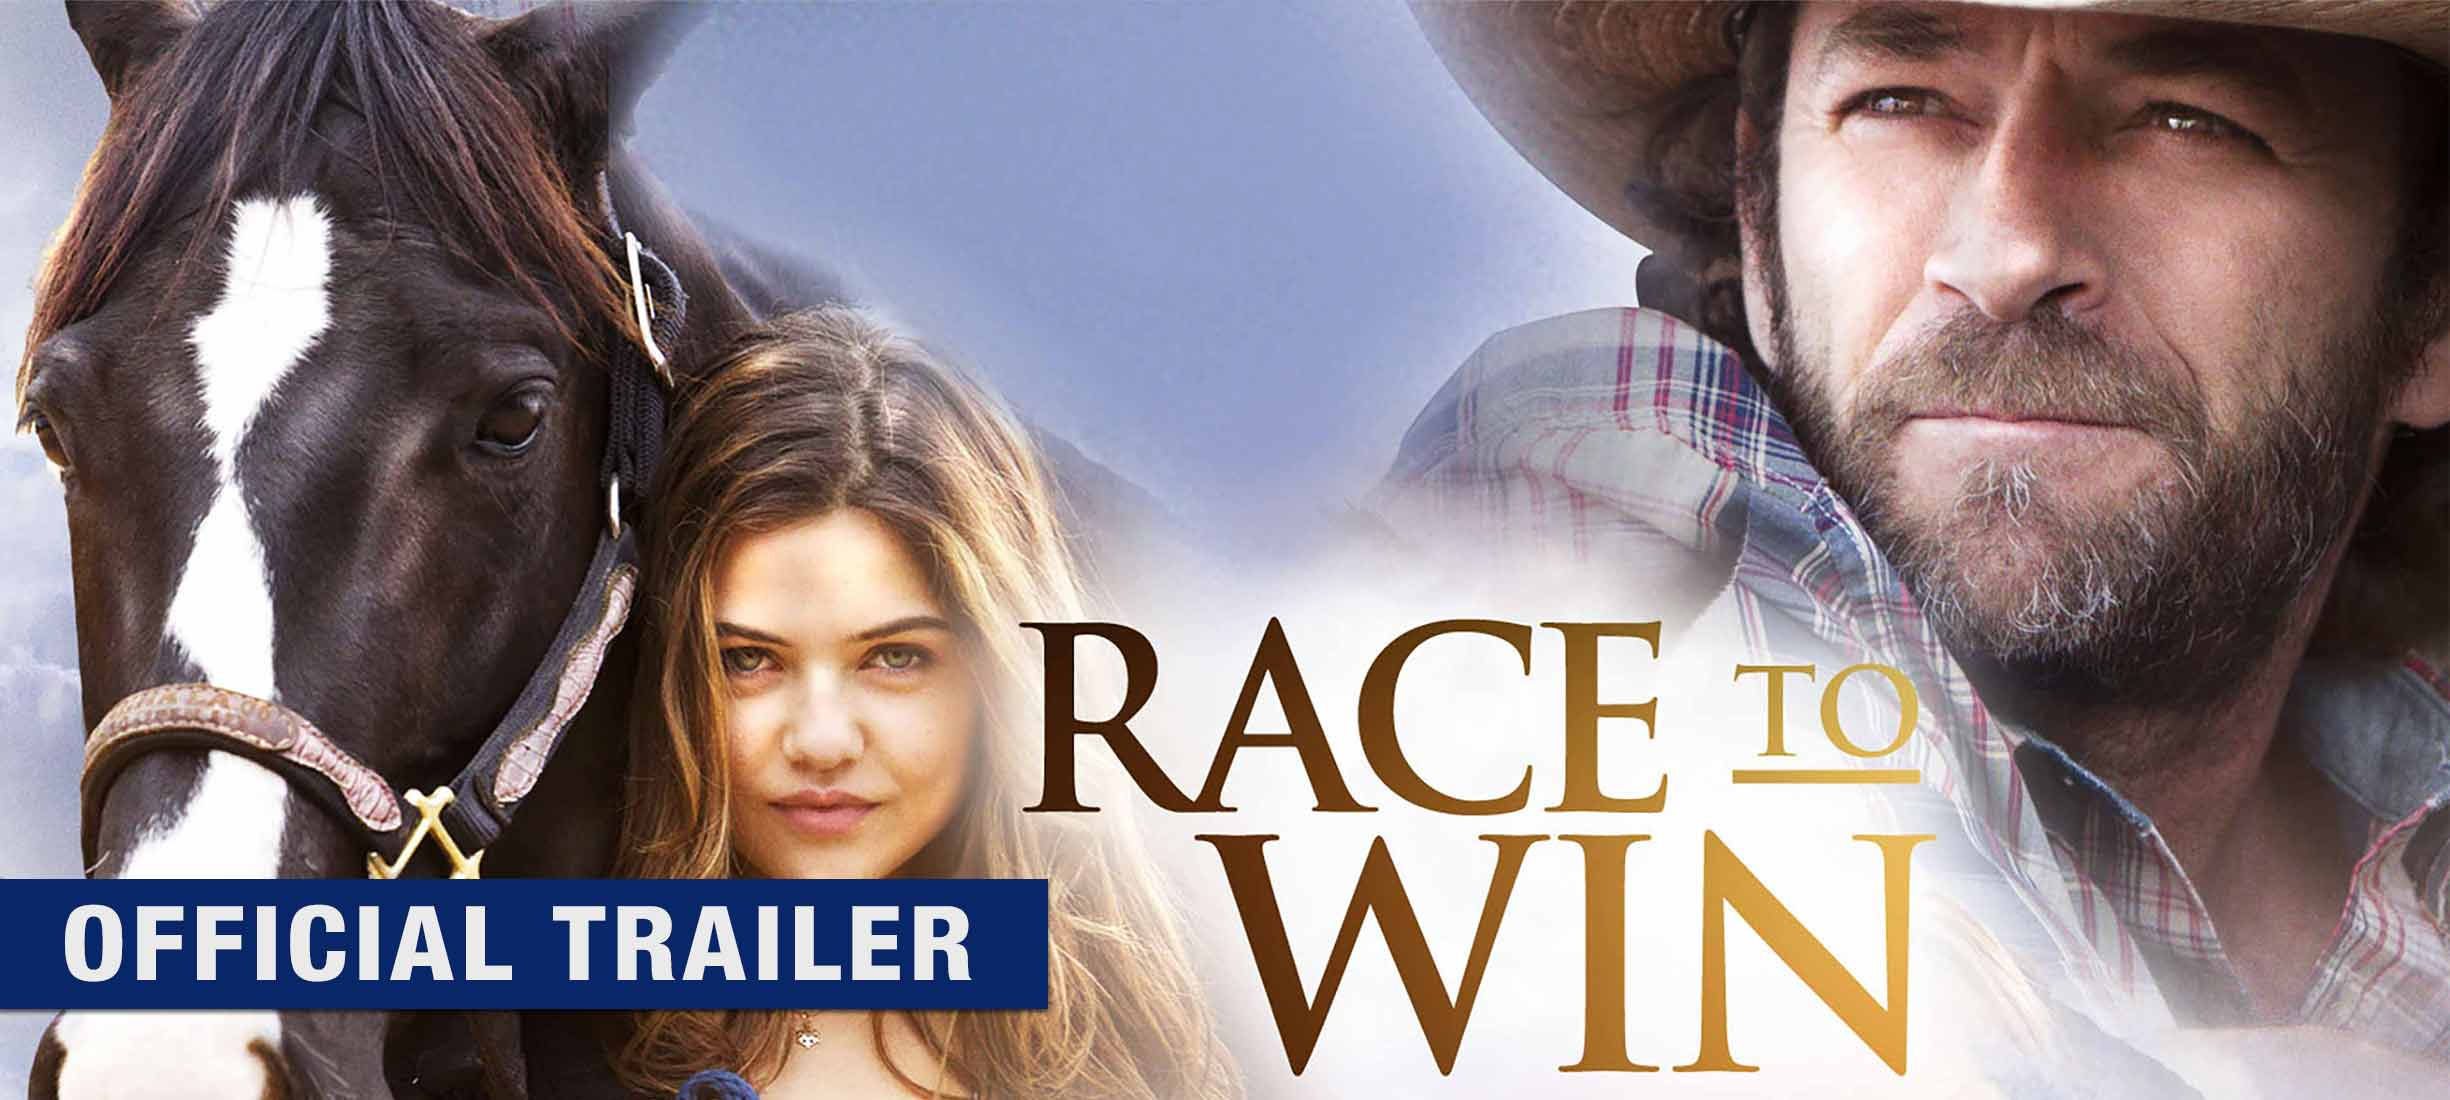 Race to Win: Trailer